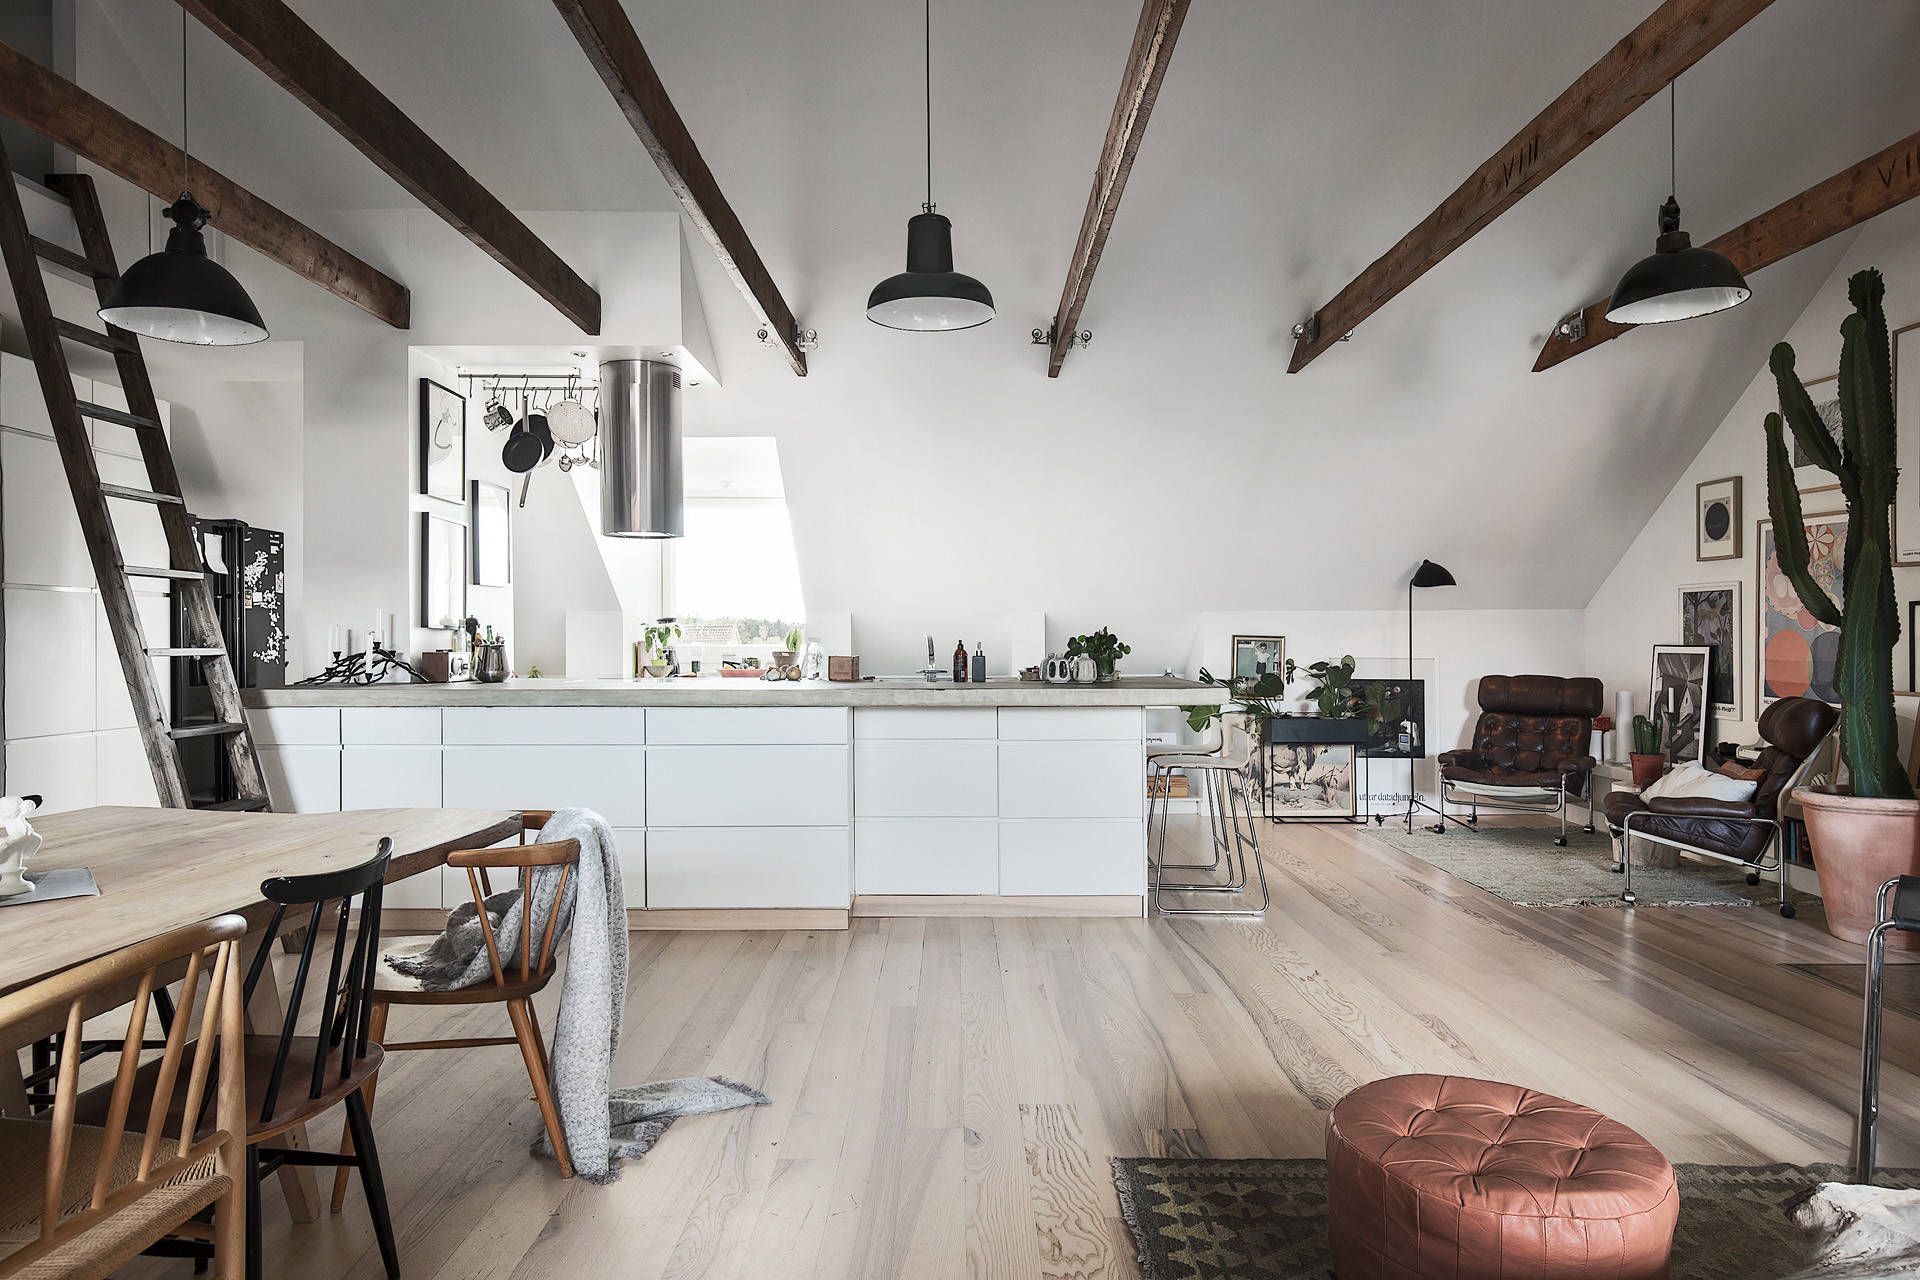 15 Unbelievable Scandinavian Kitchen Designs That Will